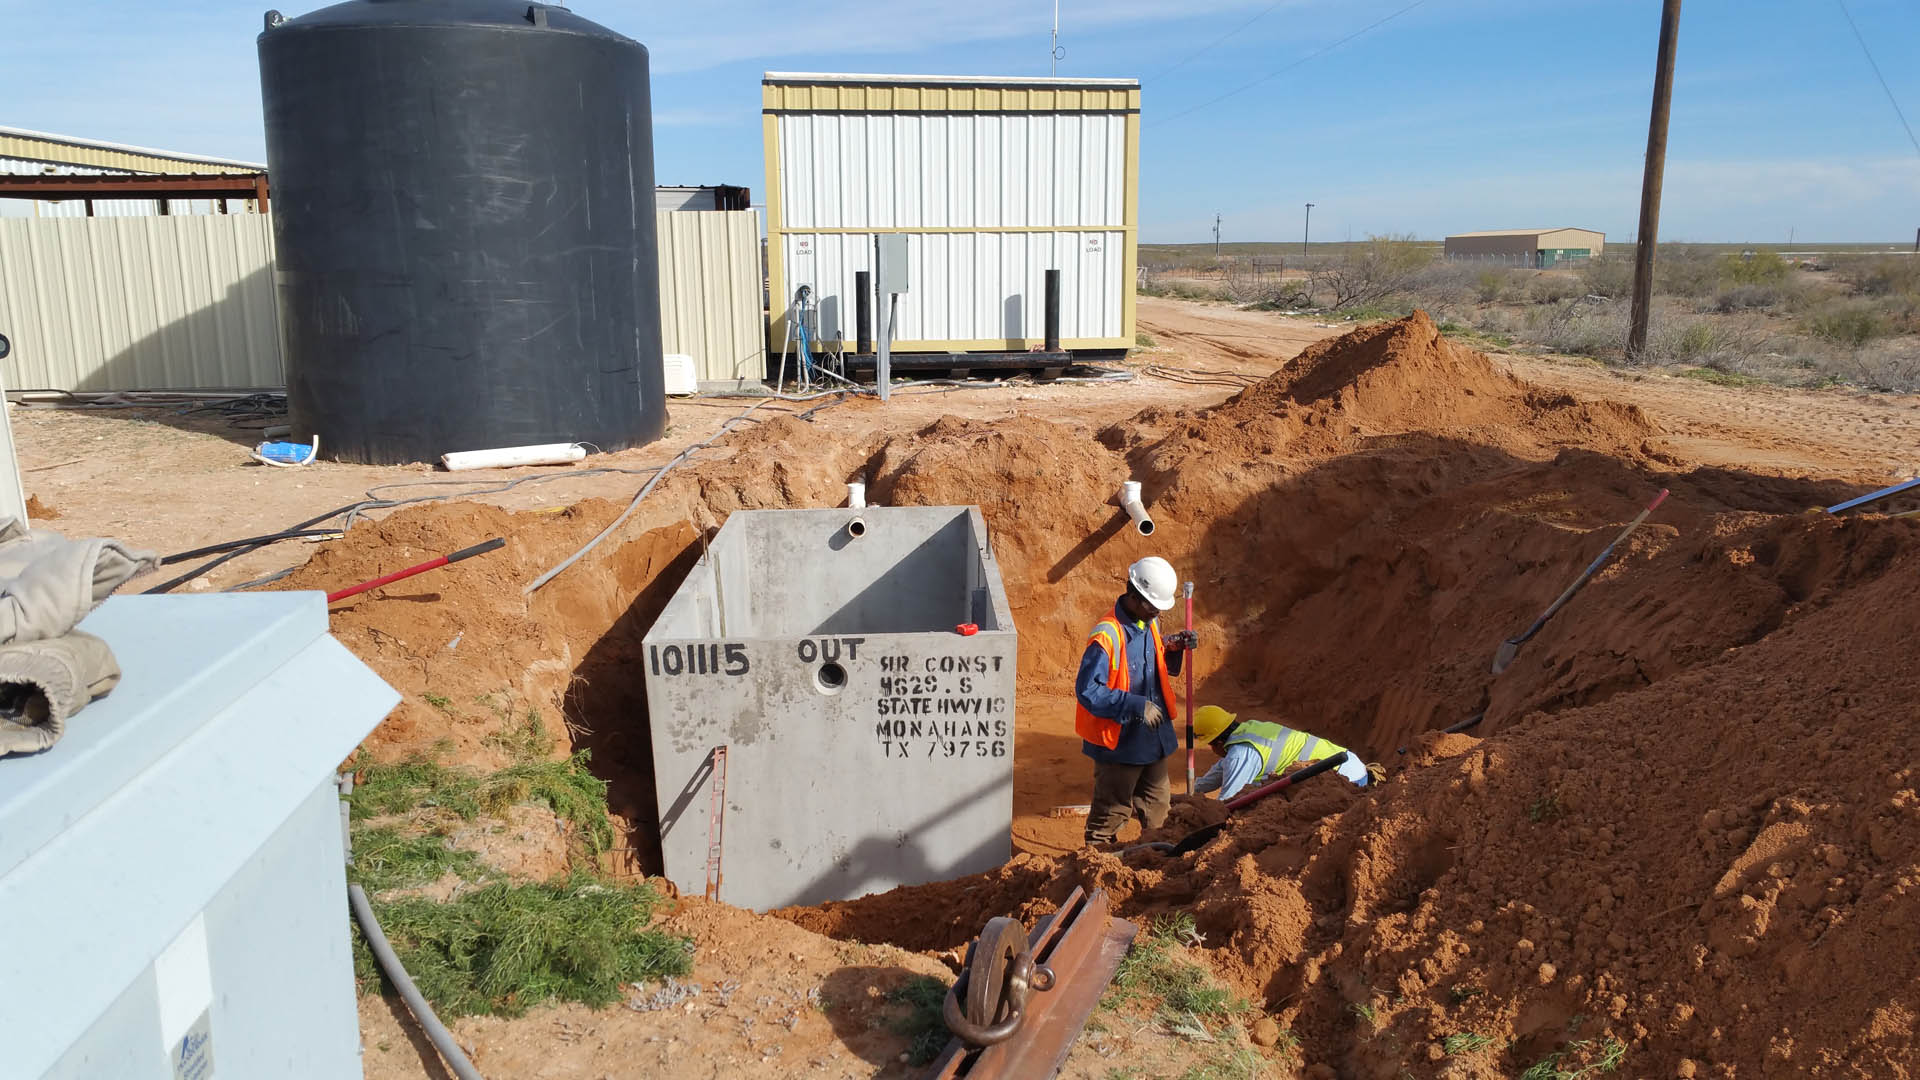 Porta Potty Rental in Fort Stockton, TX - R & R Construction